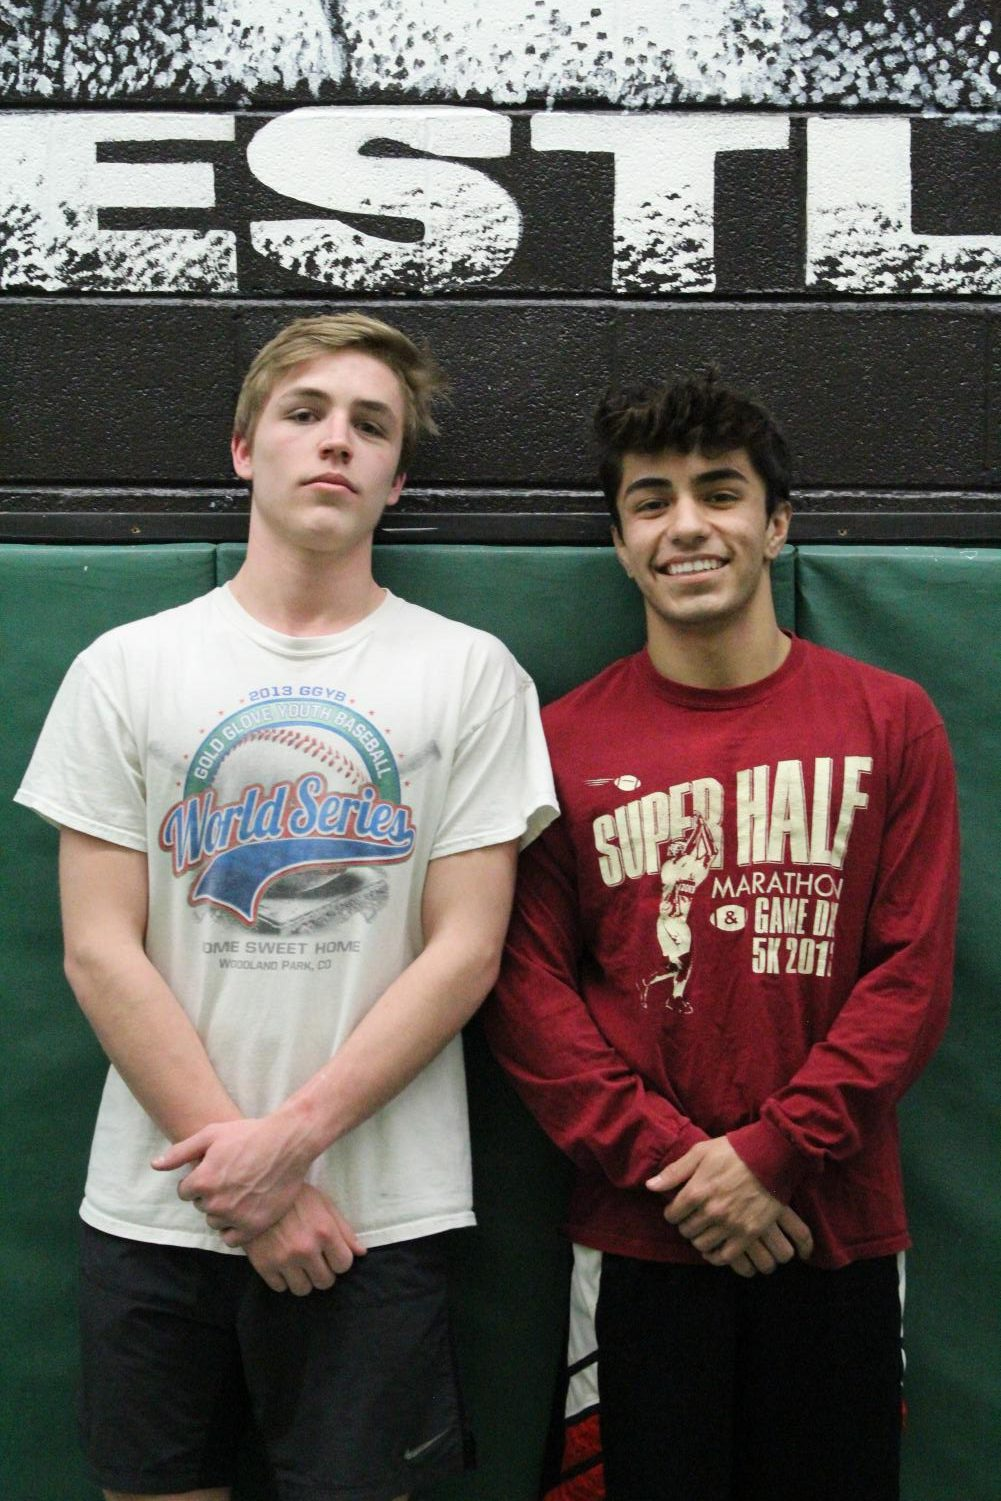 Byrd McCarley (12) and Ceasar Sanchez (12) are both shooting to make it to 2019 Wrestling State. They will have the Regionals meet to make that goal reality.